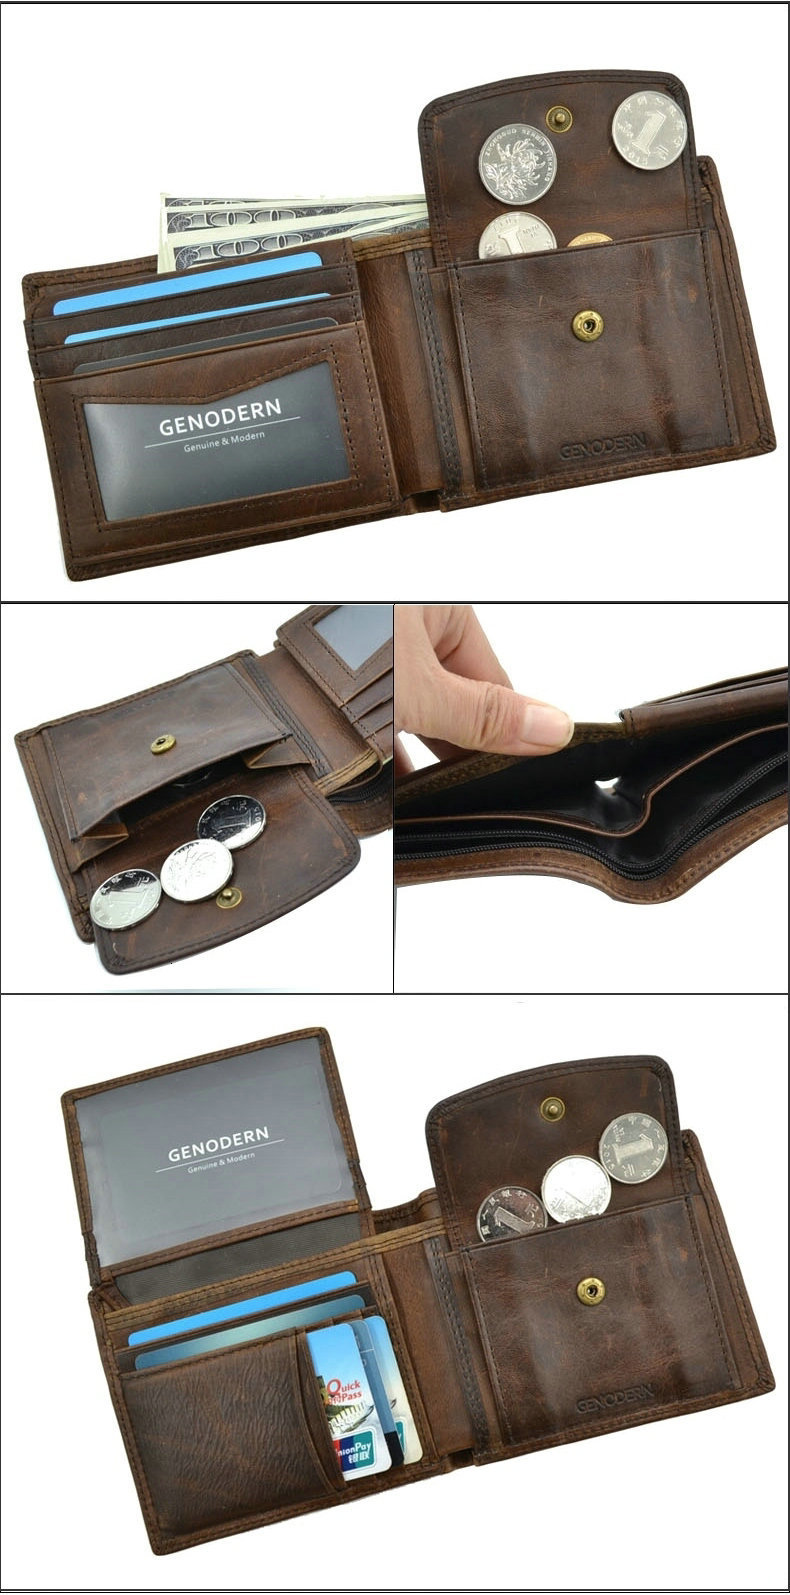 H6a190b61f44d4b49909c6c7395ed9a4ds - GENODERN Cow Leather Men Wallets with Coin Pocket Vintage Male Purse Function Brown Genuine Leather Men Wallet with Card Holders